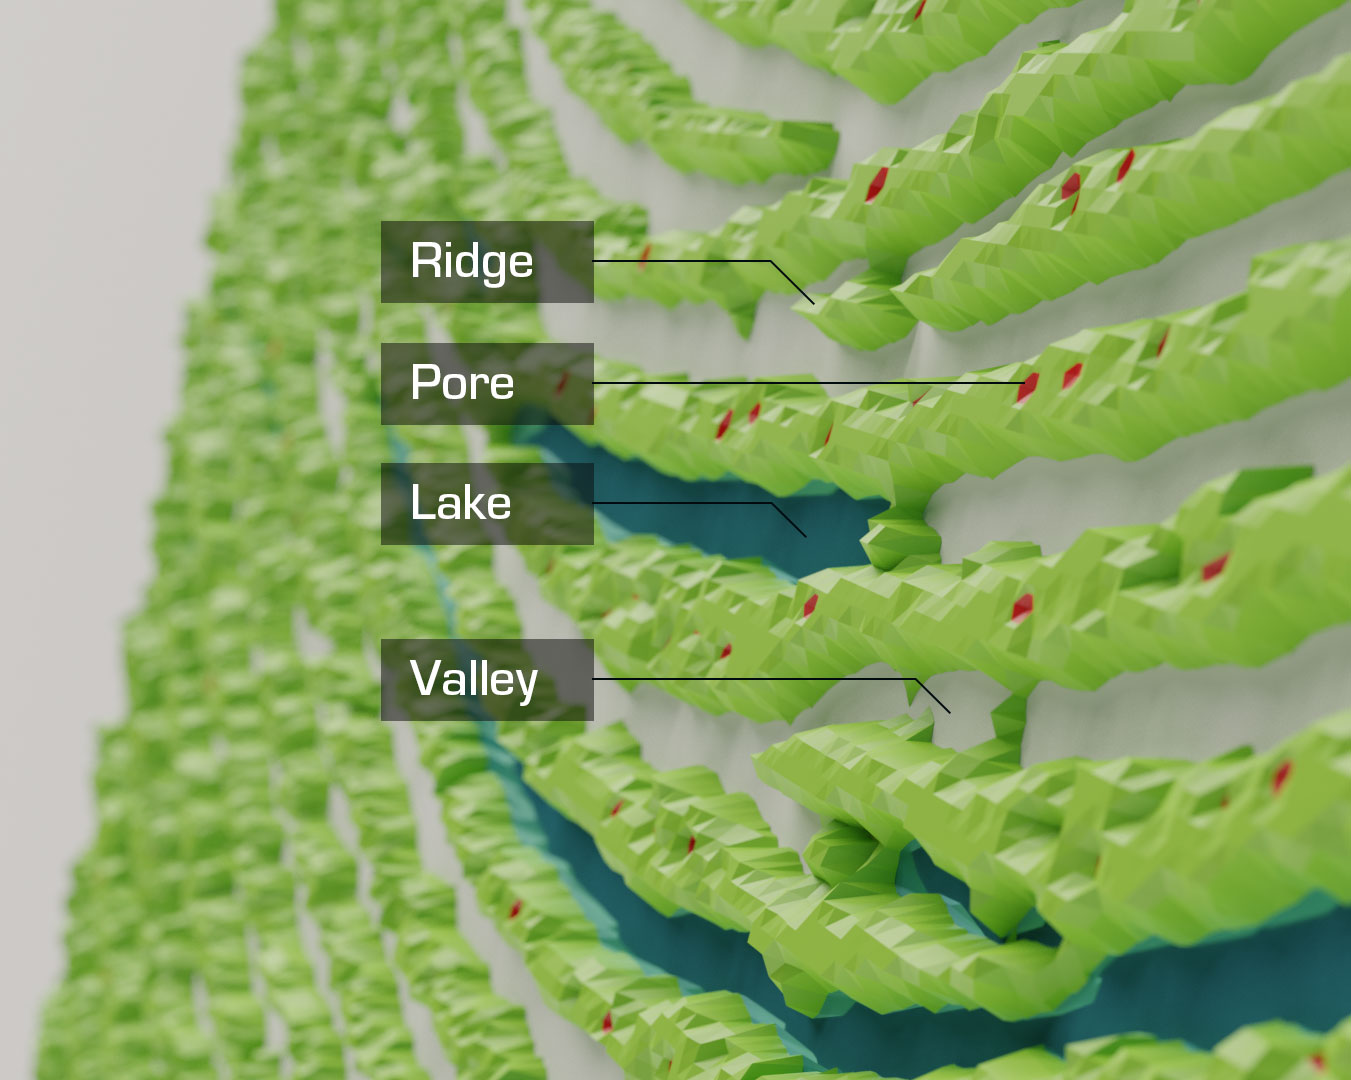 An image pointing out ridges, pores, lakes, and valleys on a fingerprint.